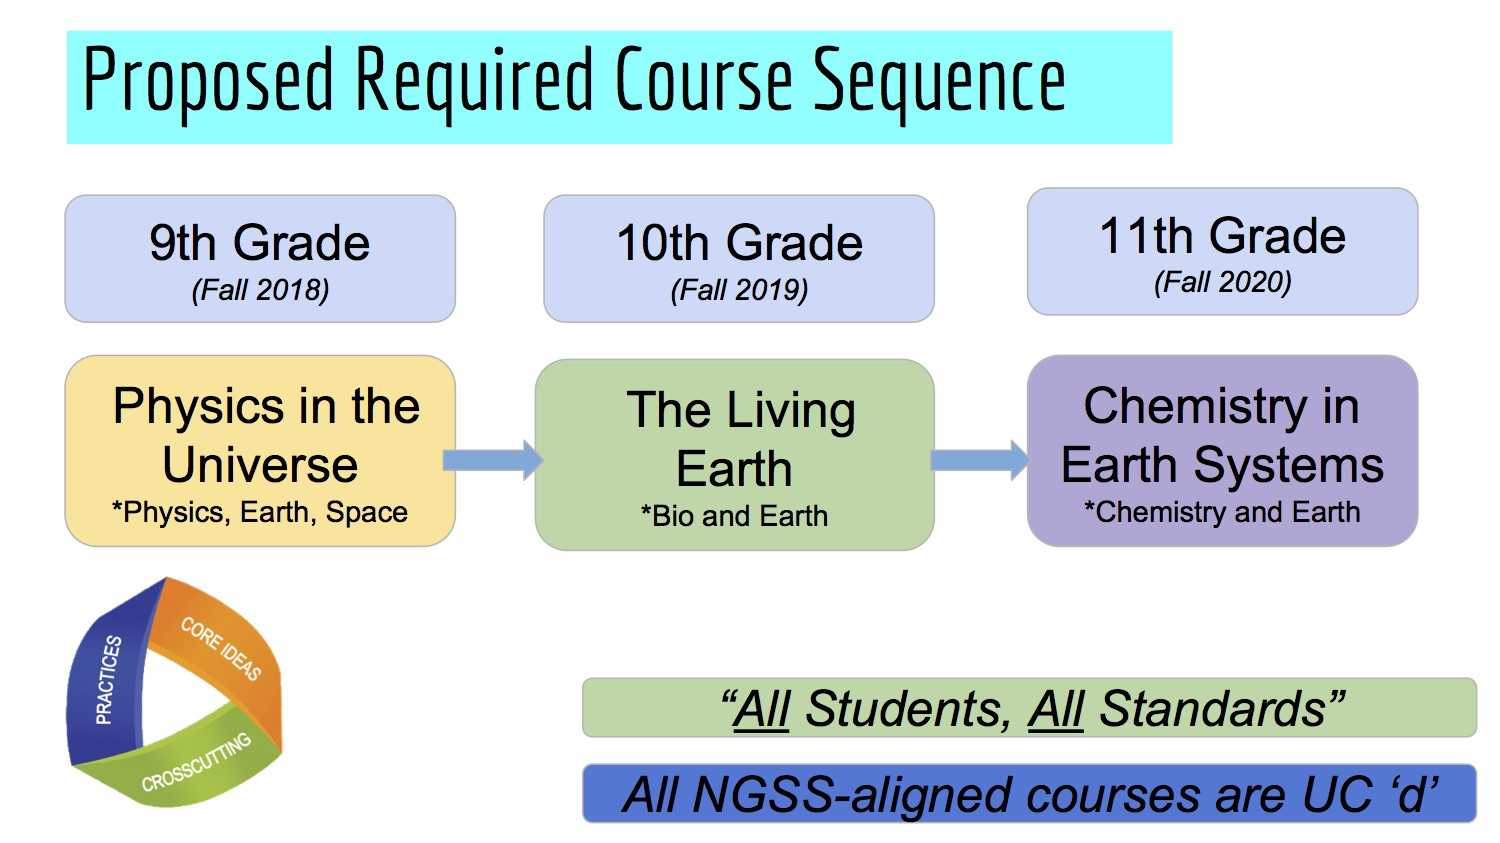 New required science sequence proposed in place of Integrated Science